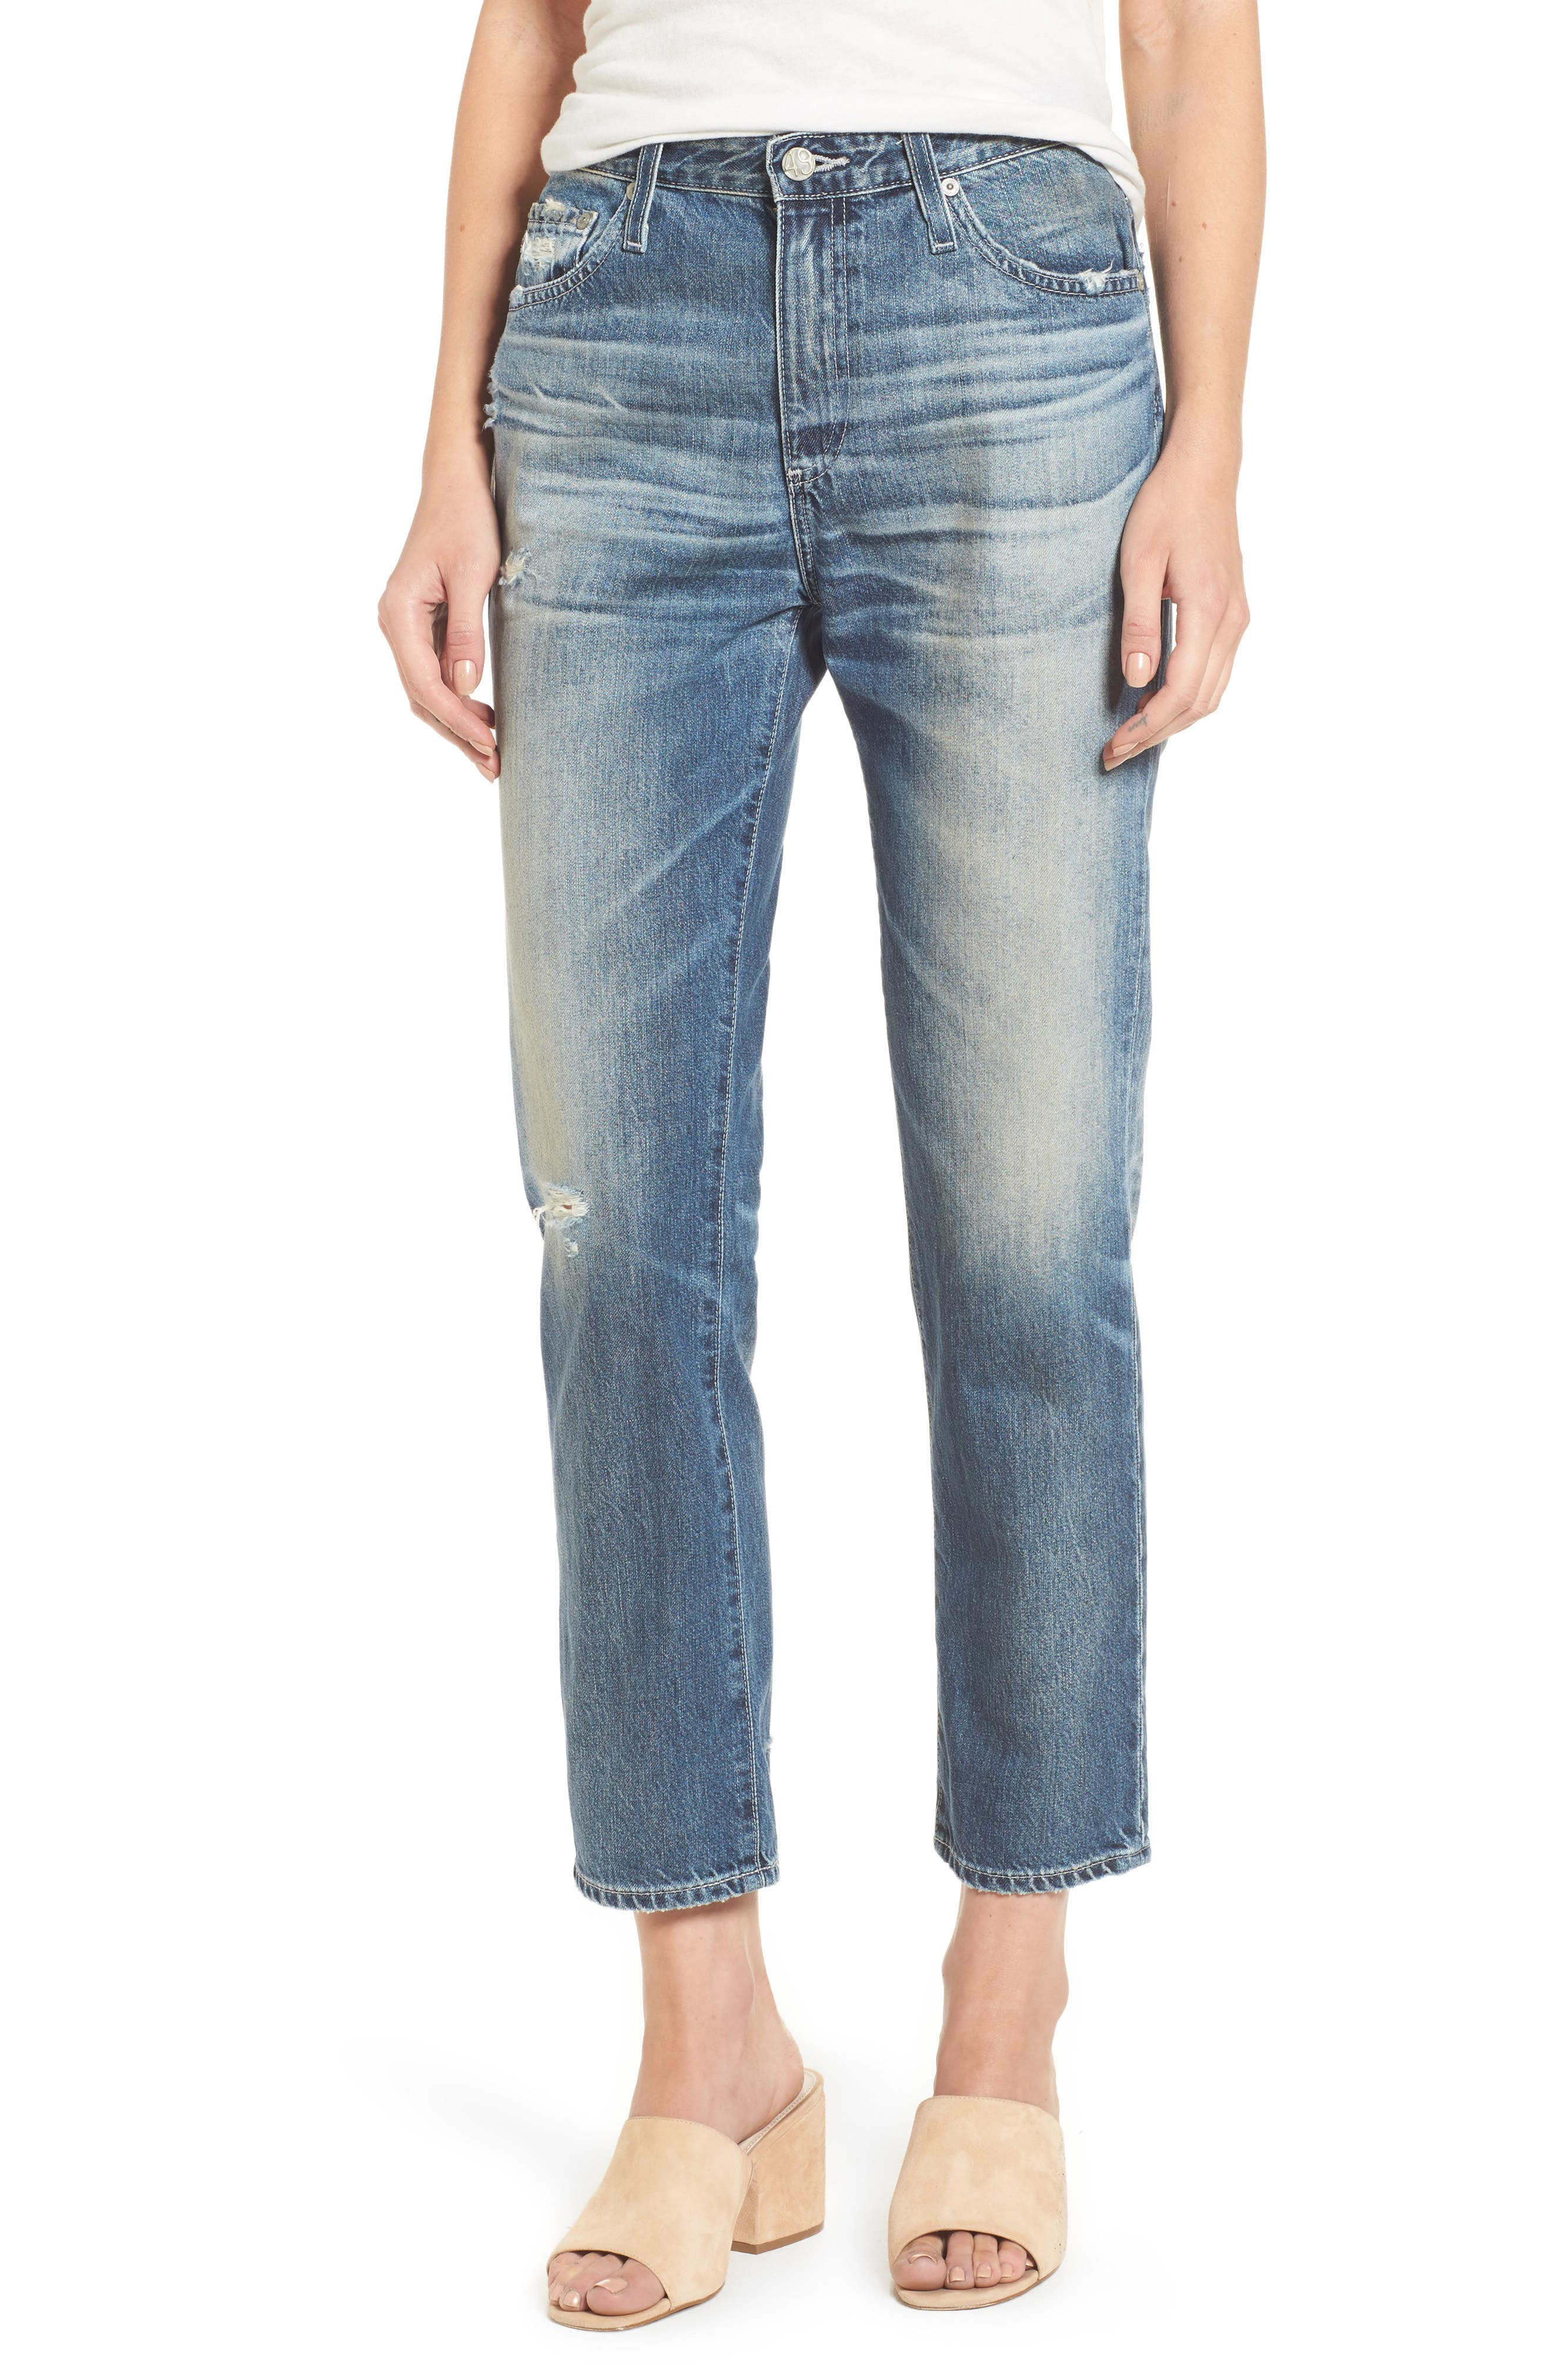 Alternate Image 1 Selected - AG Isabelle High Waist Straight Leg Crop Jeans (23 Years Wind Worn)